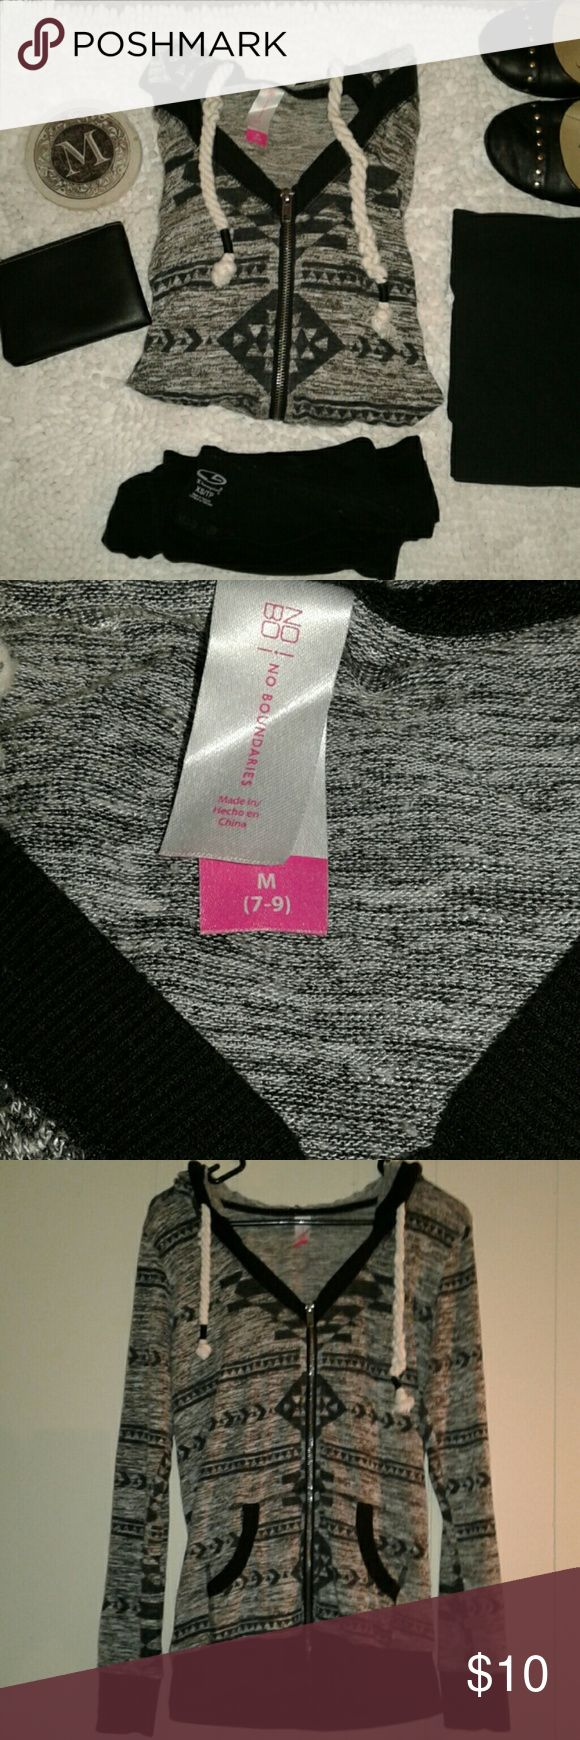 """Scoop neck Aztec zip up hoodie medium EUC Grey & black Aztec pattern lightweight knit scoop neck full zip hooded sweatshirt. Size medium by No Boundaries. Tunic length approx 25"""" from shoulder to bottom hemline. Cute braided rope detail drawstrings 67% Rayon/ 29% polyester/4% spandex materials.   PERFECT FOR FALL!  NO TRADES PLEASE DO NOT LOWBALL ME BUNDLE 20% DISCOUNT! No Boundaries Tops Sweatshirts & Hoodies"""